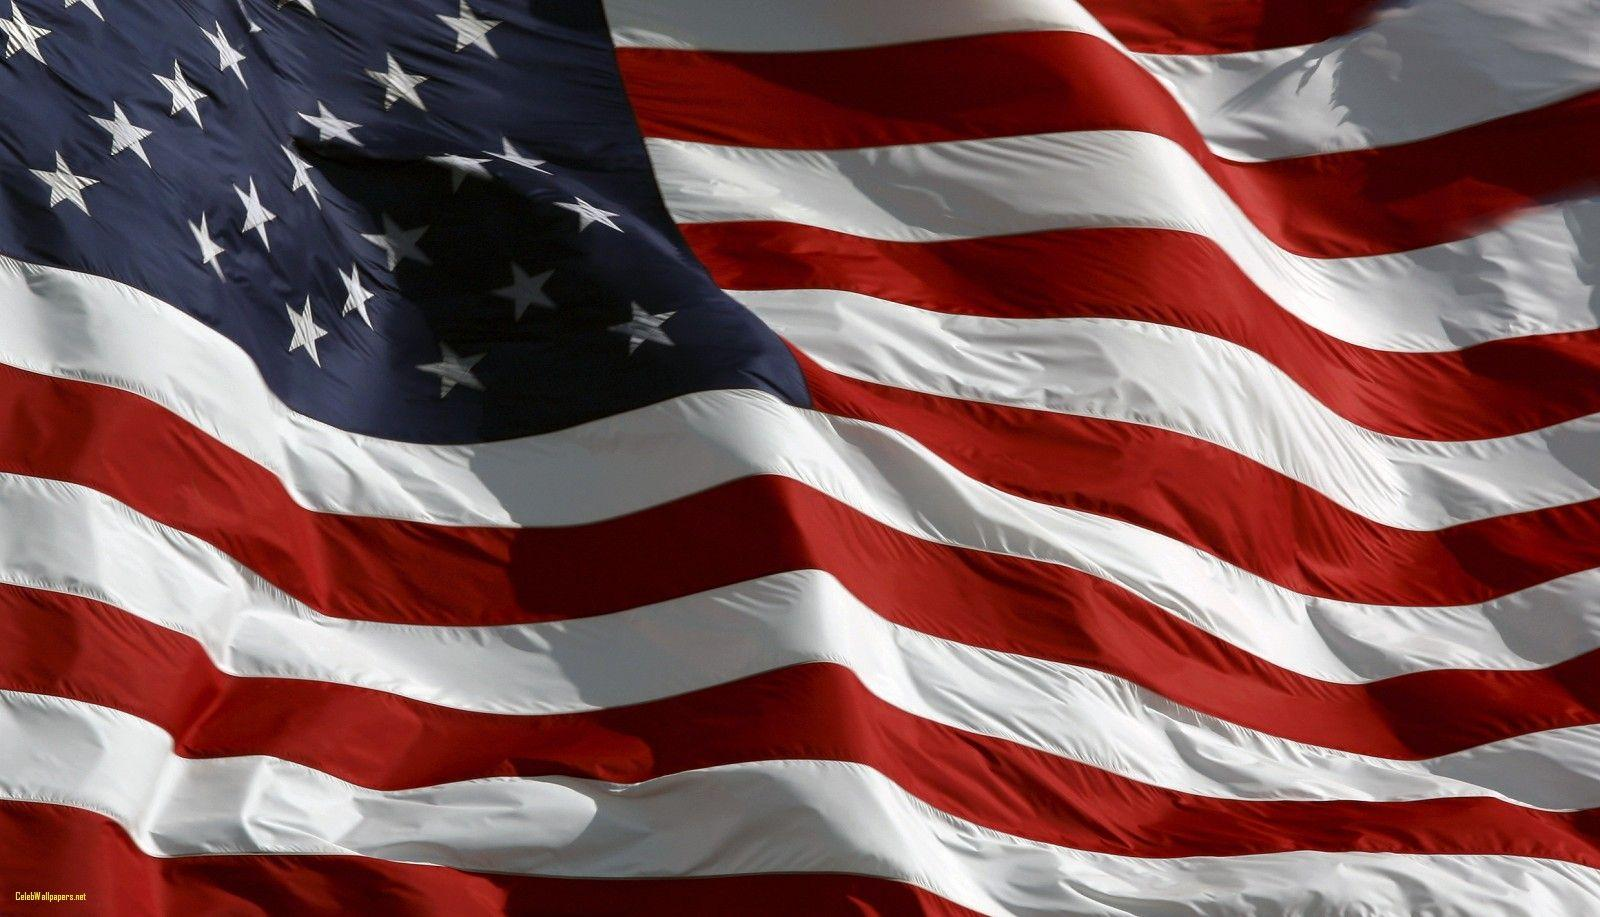 American Flag Wallpapers Awesome American Flag Lumia Icon Wallpapers X